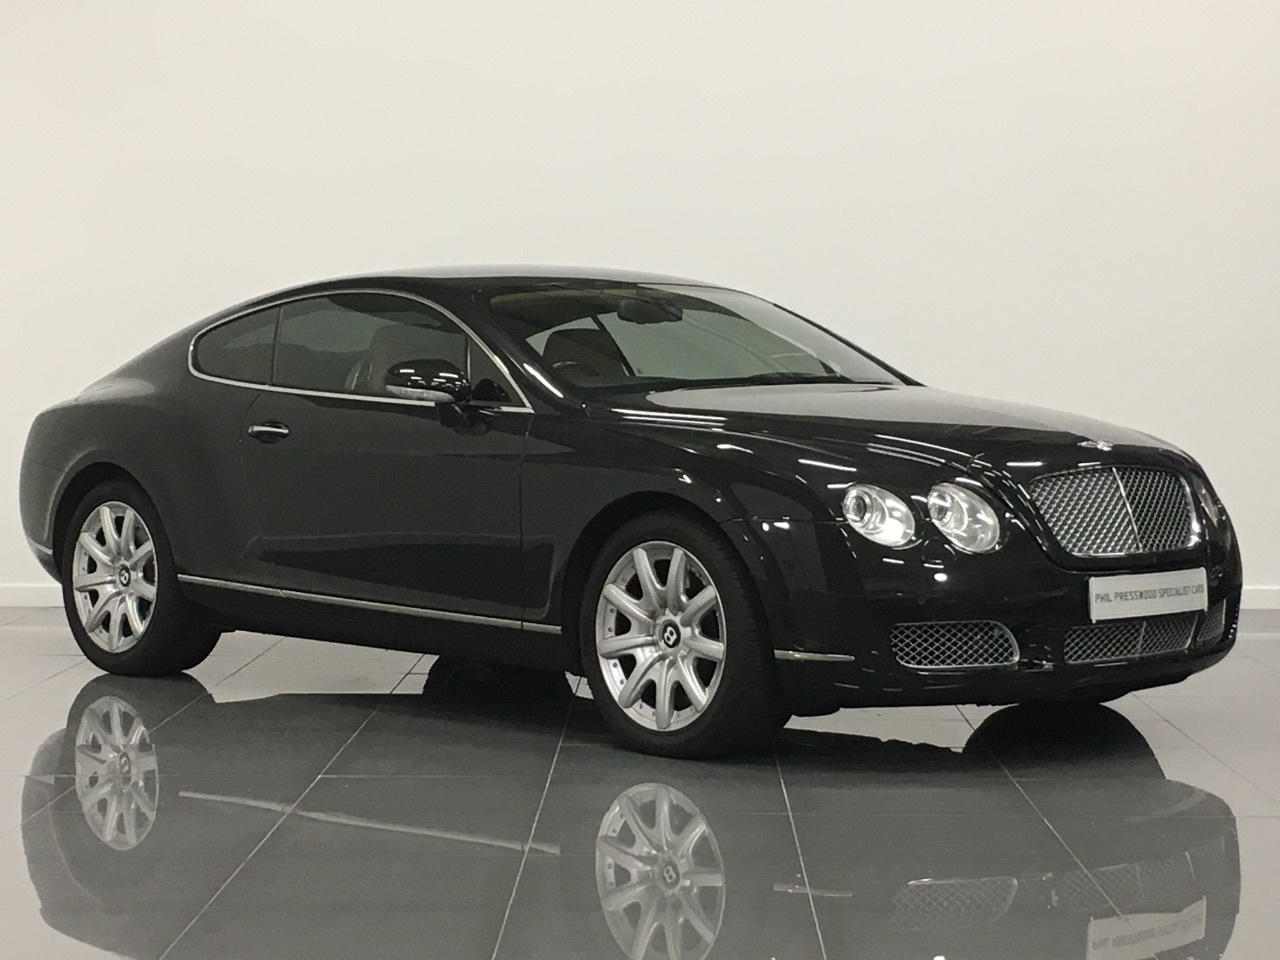 used bentley continental gt 60 w12 2dr auto for sale in brigg lincolnshire phil presswood. Black Bedroom Furniture Sets. Home Design Ideas